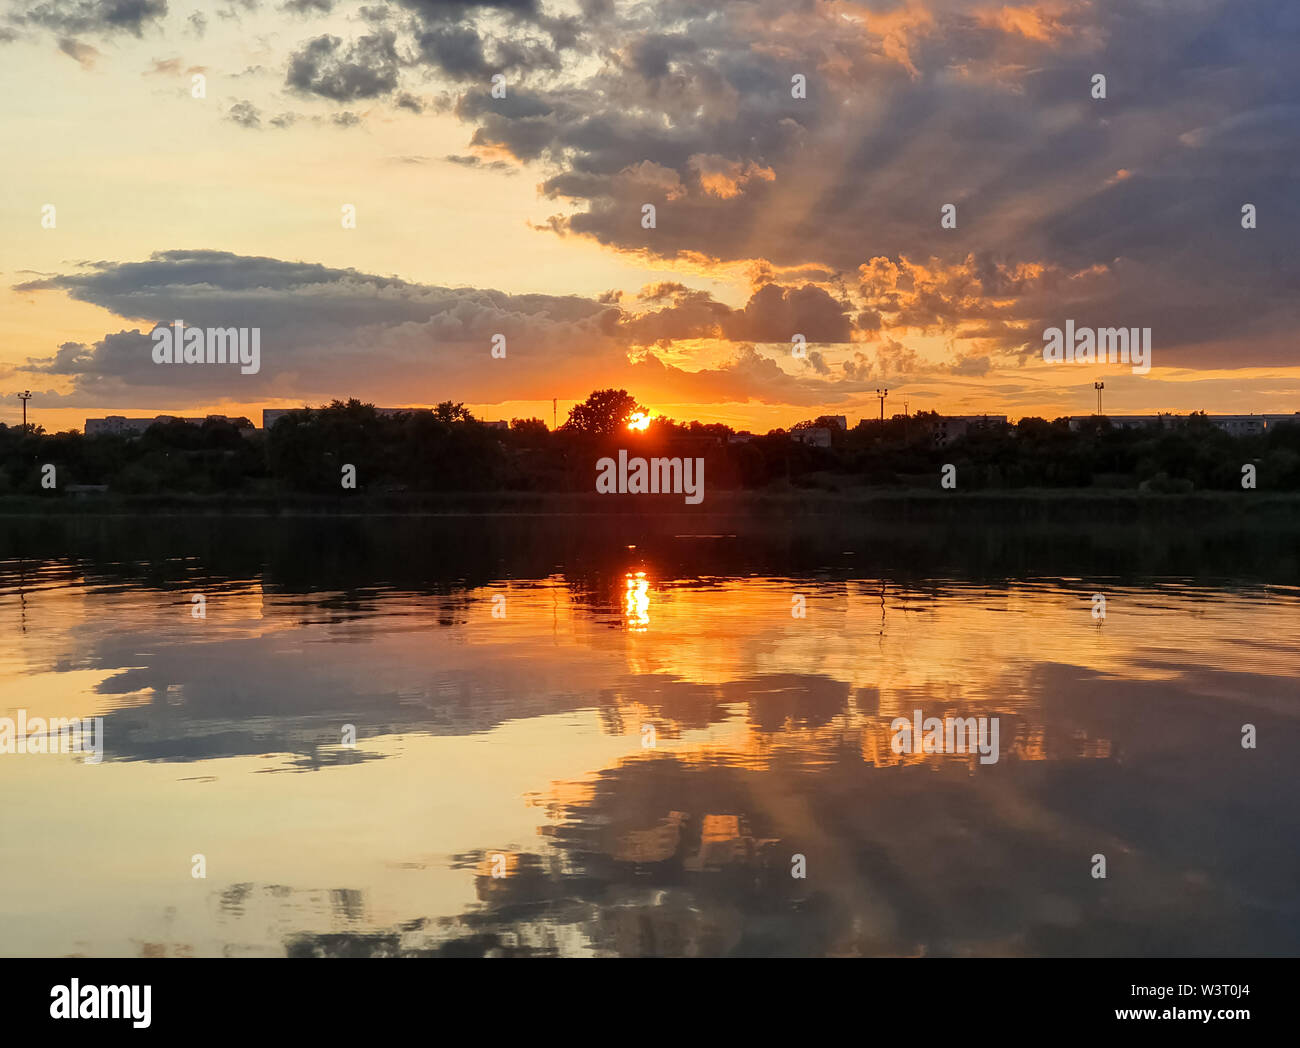 Wonderful sunset over the city horizon with reflection on the calm lake water in a silent summer evening. - Stock Image